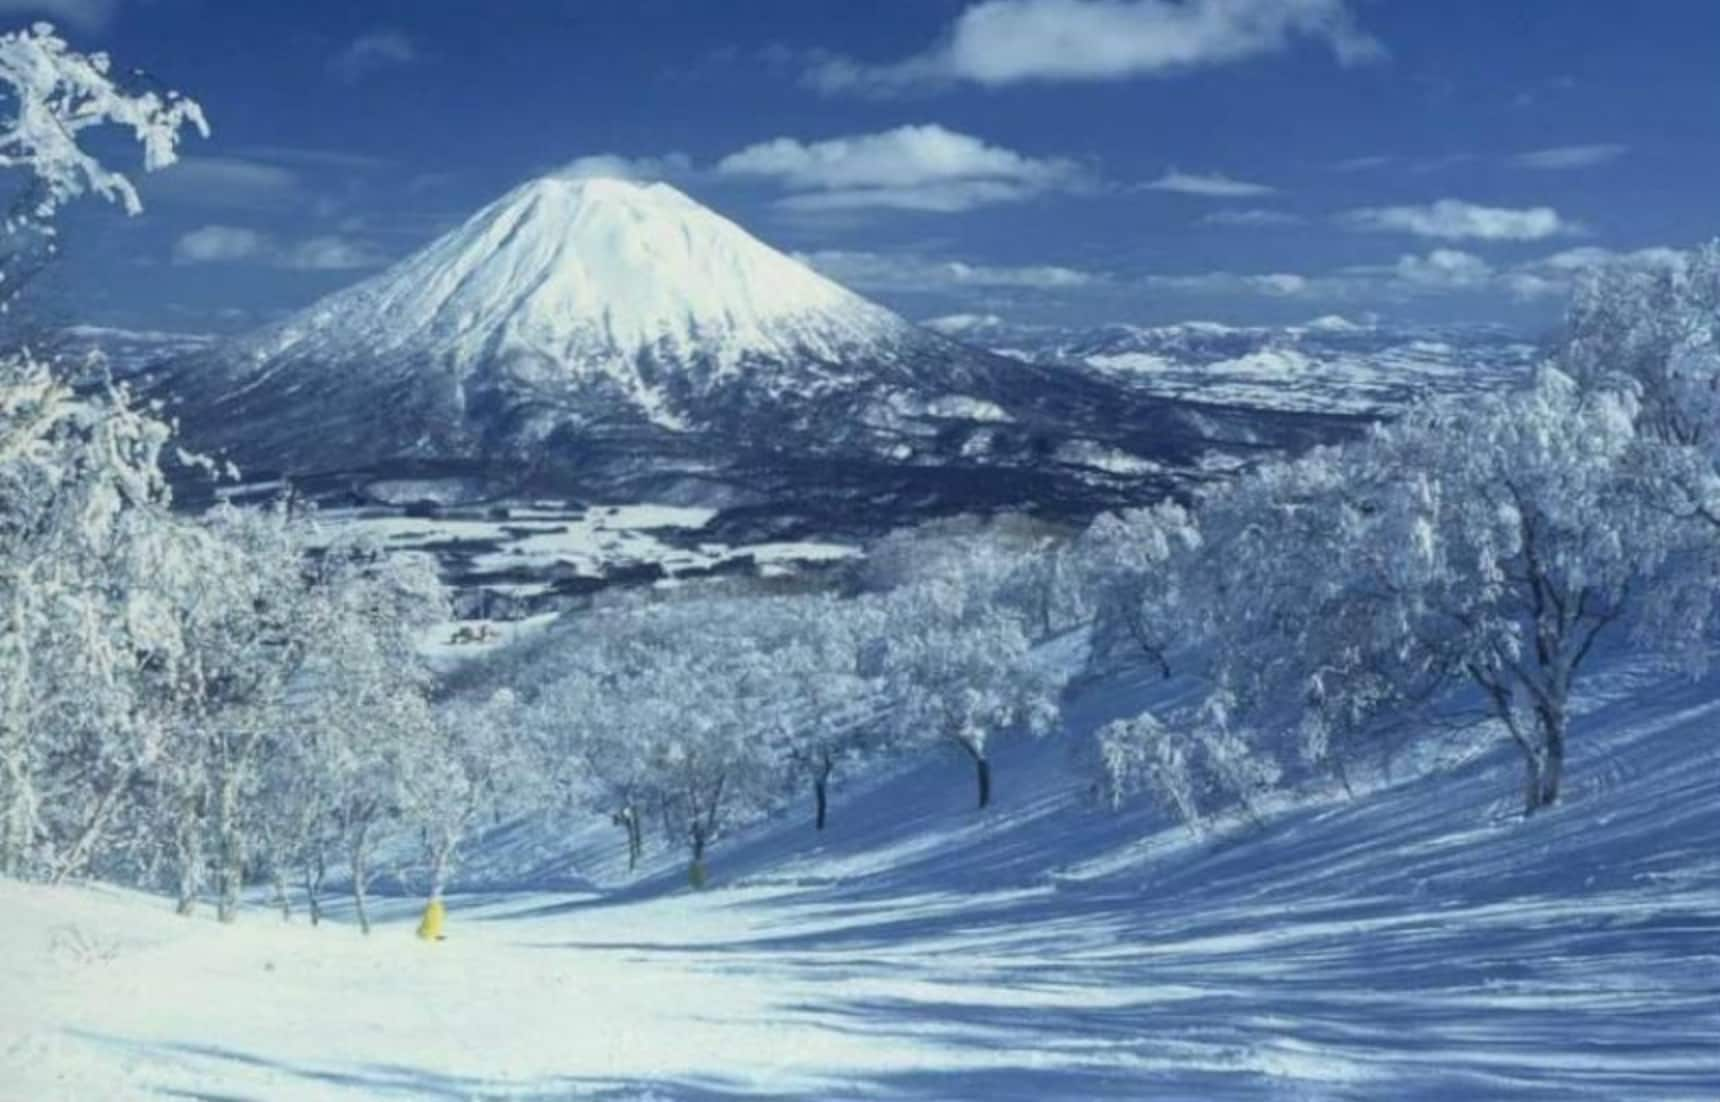 The 5 Best Ski & Snowboard Locations in Japan